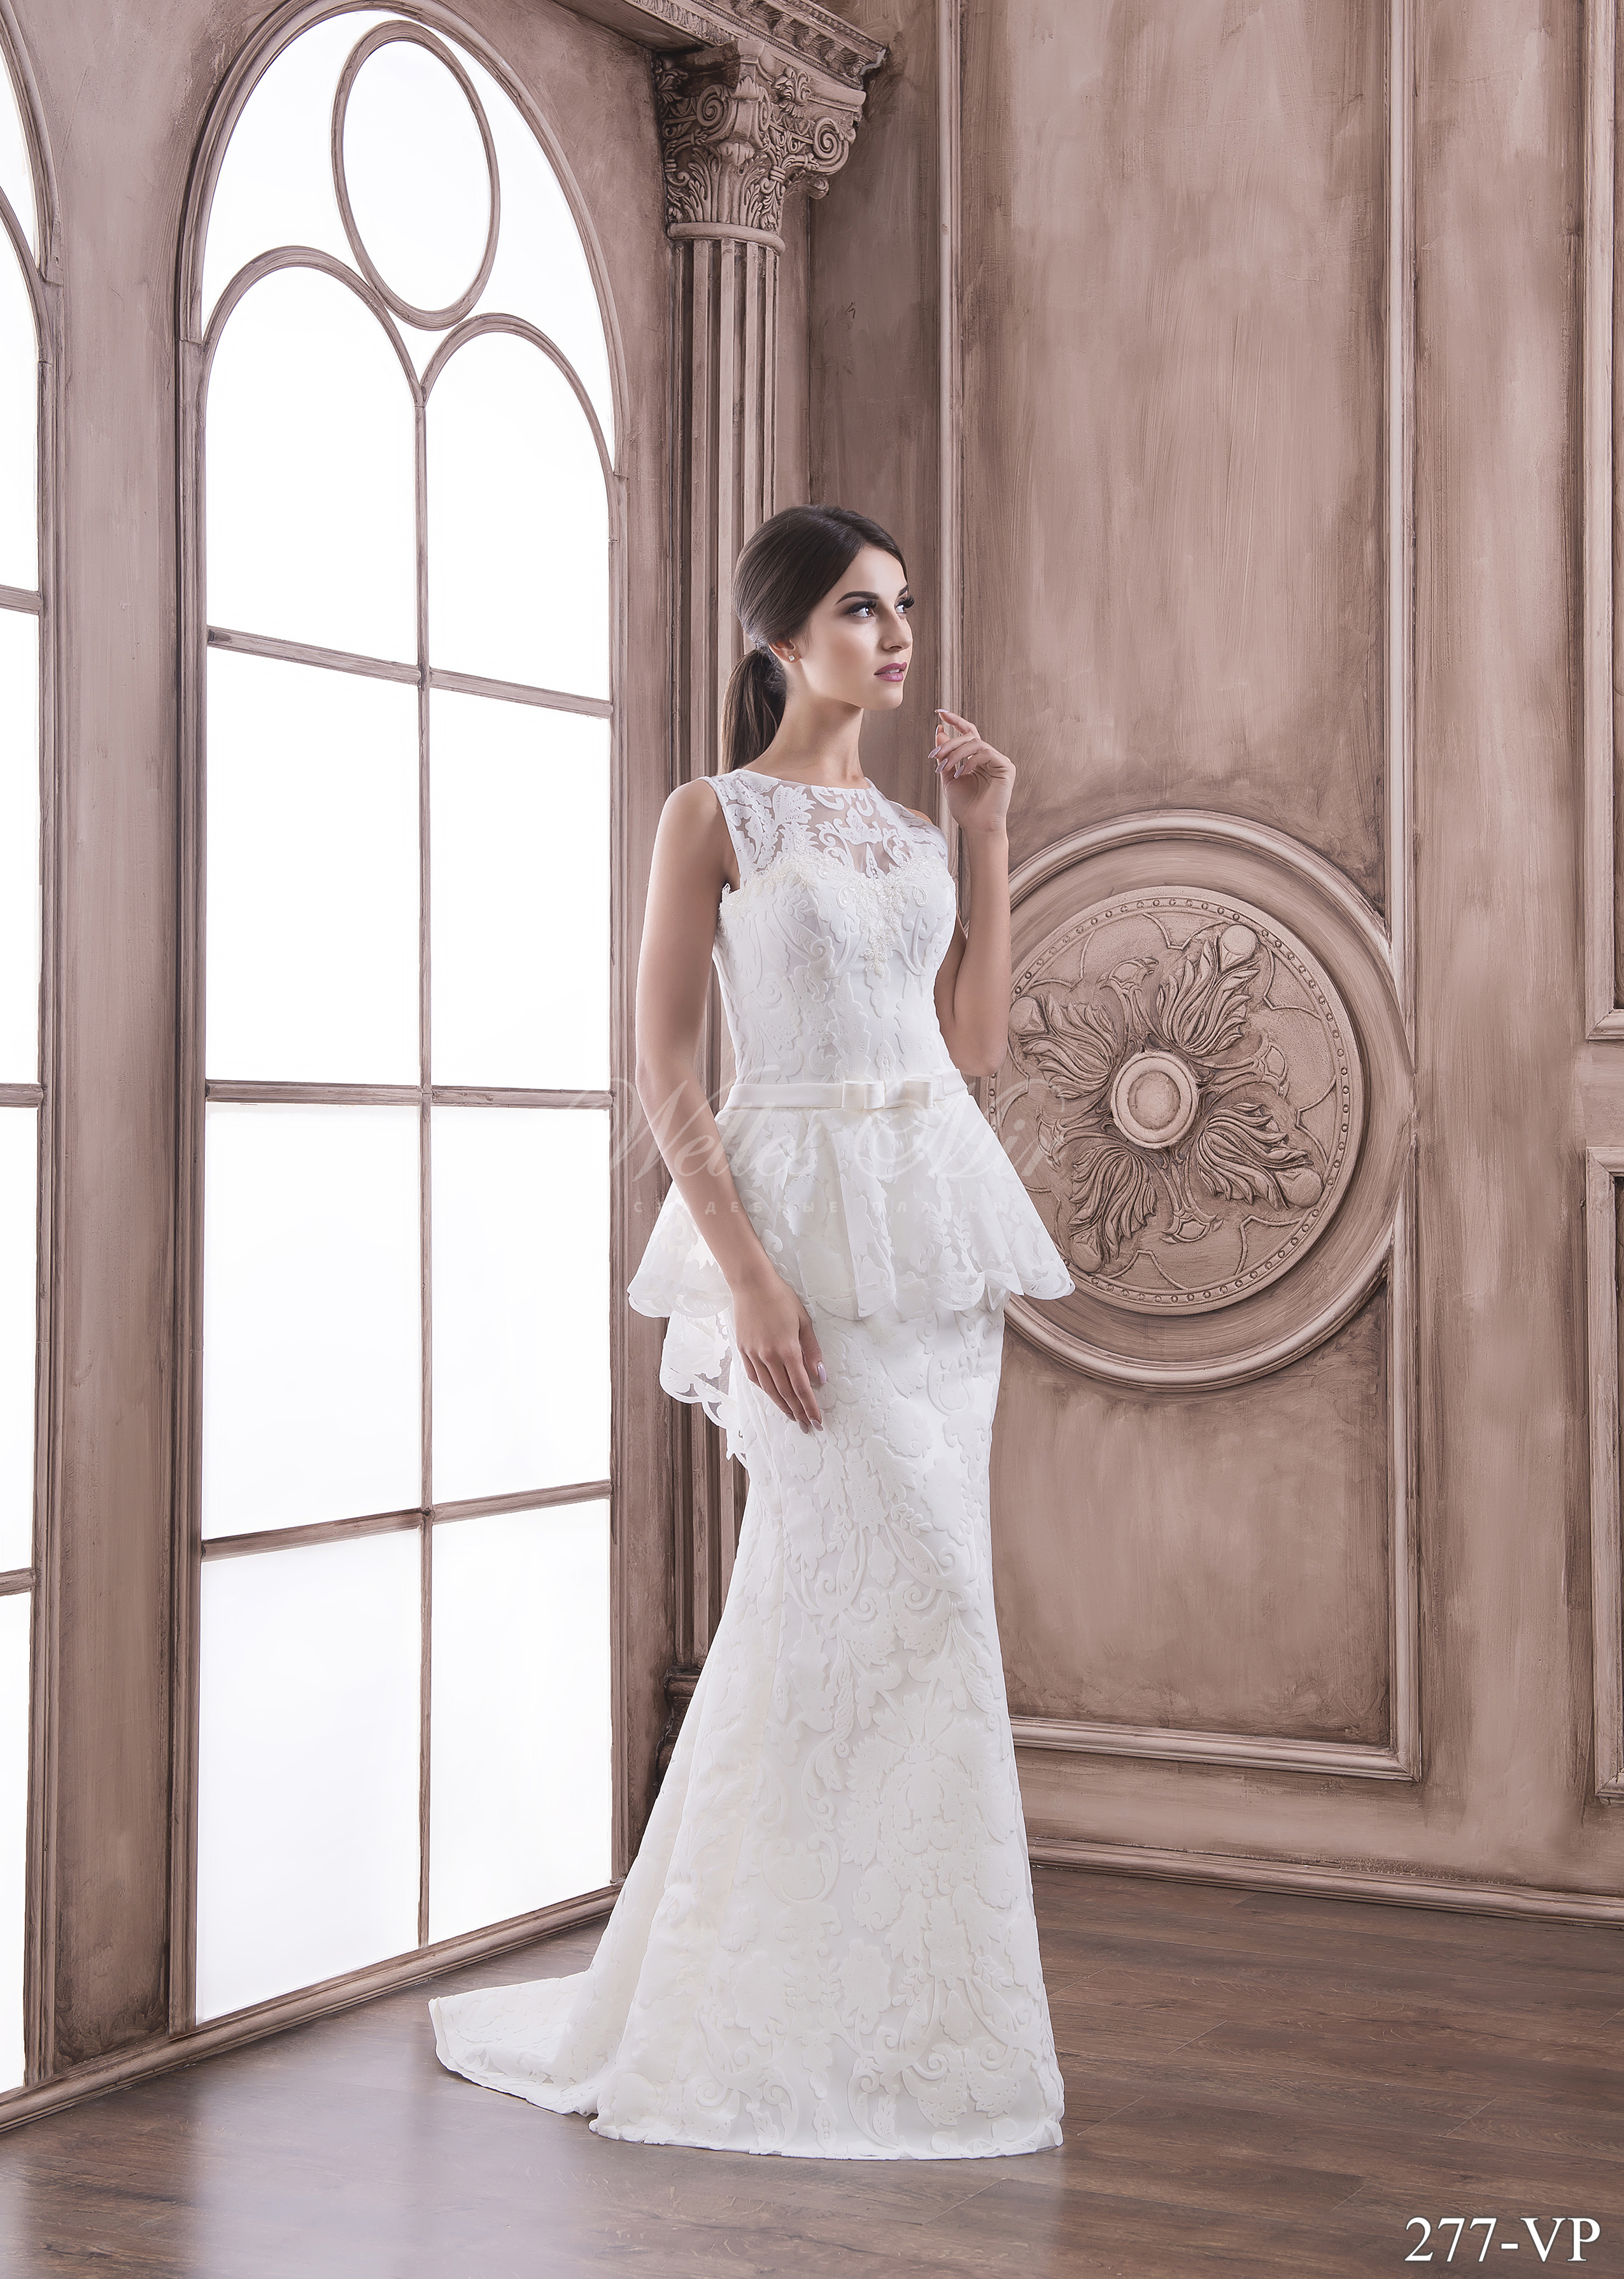 Wedding dresses 277-VP